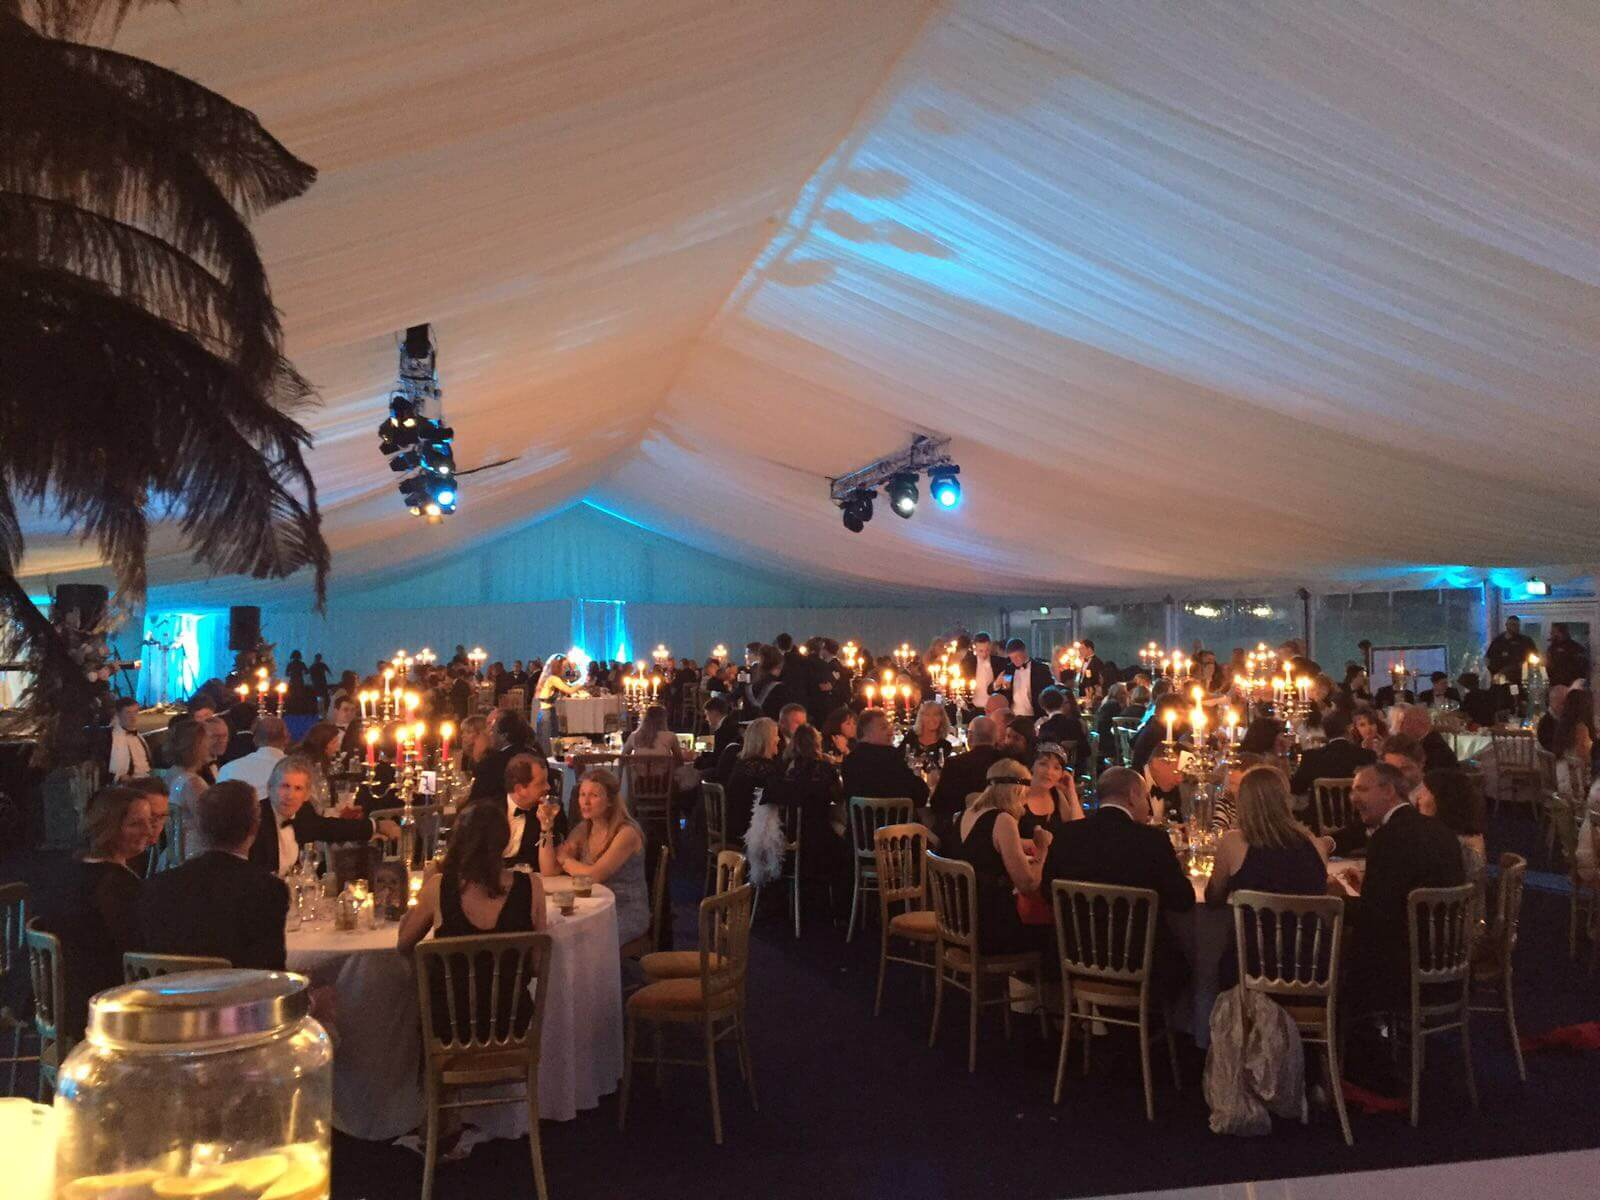 Evening sets in, candelabras glow and blue lights shine from the roof of the marquee making for a majestic setting